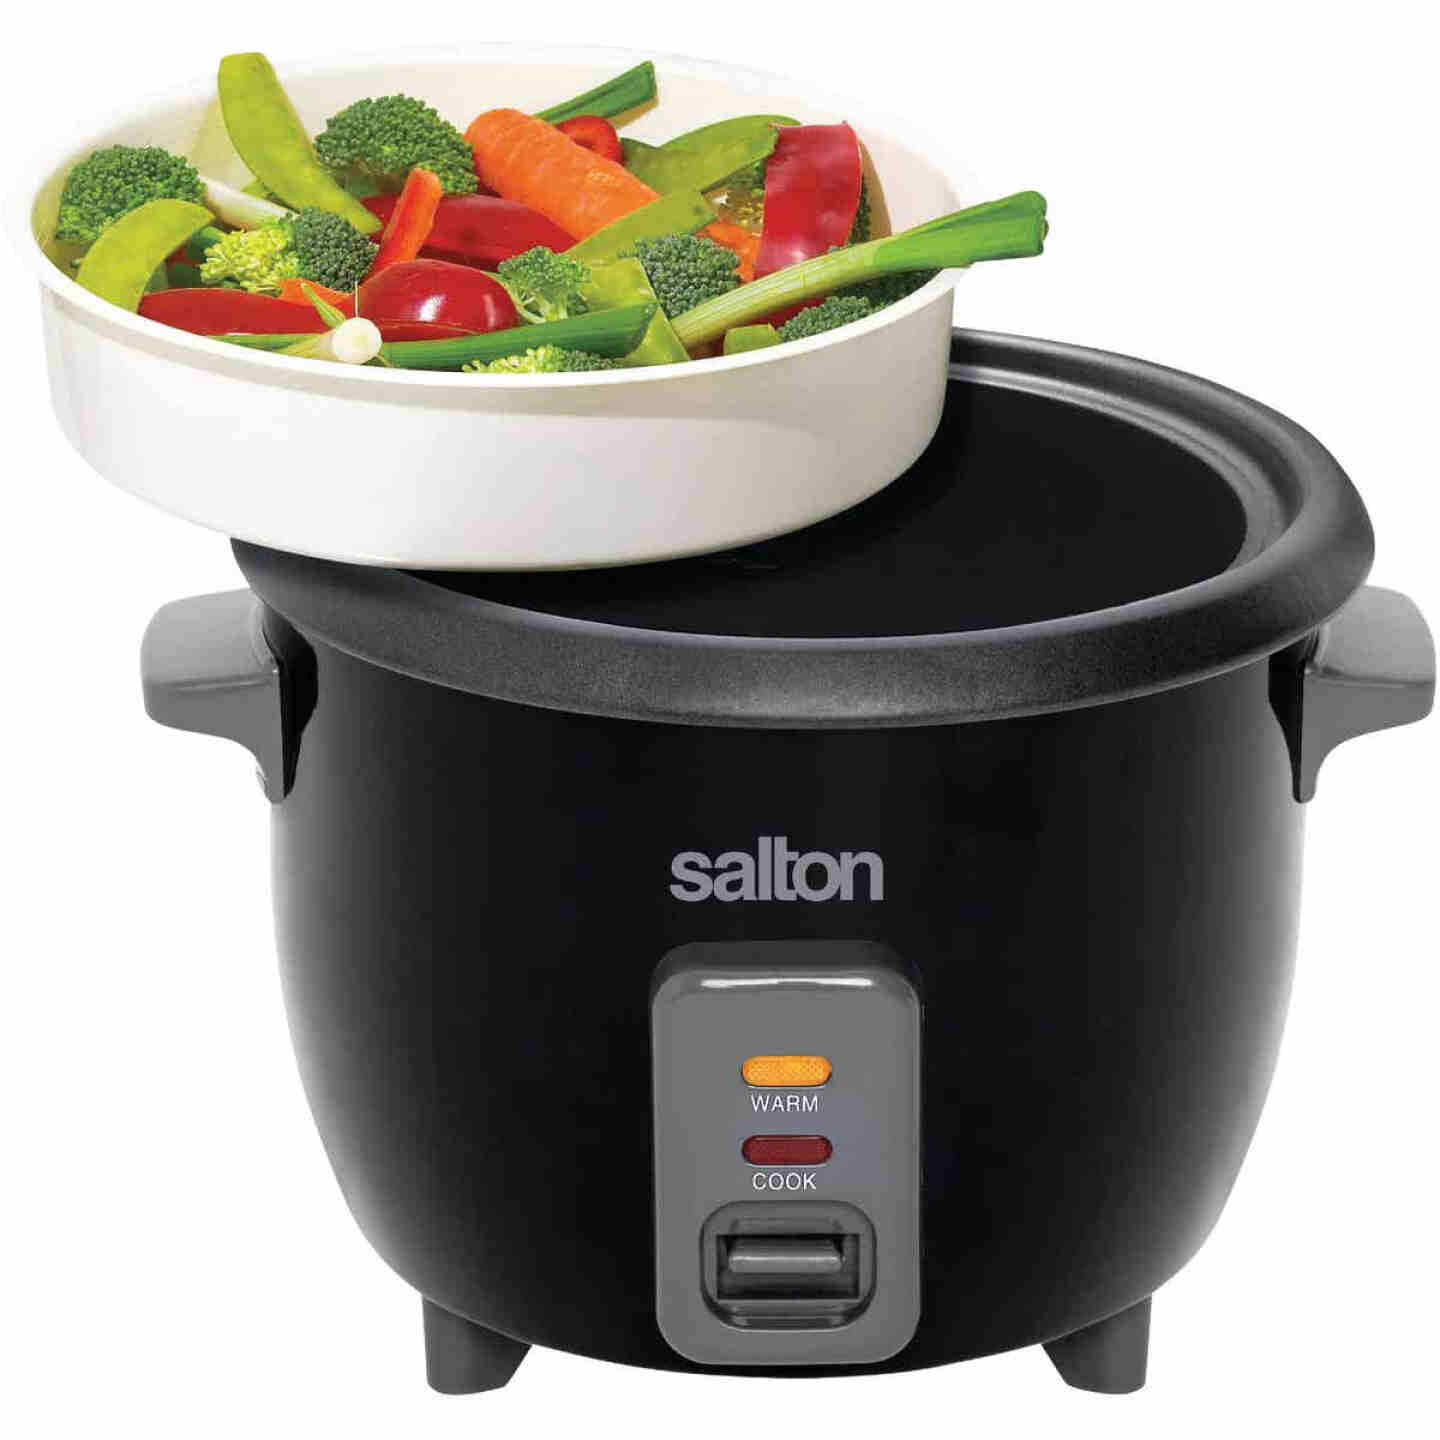 Salton 6-Cup Automatic Rice Cooker Image 3